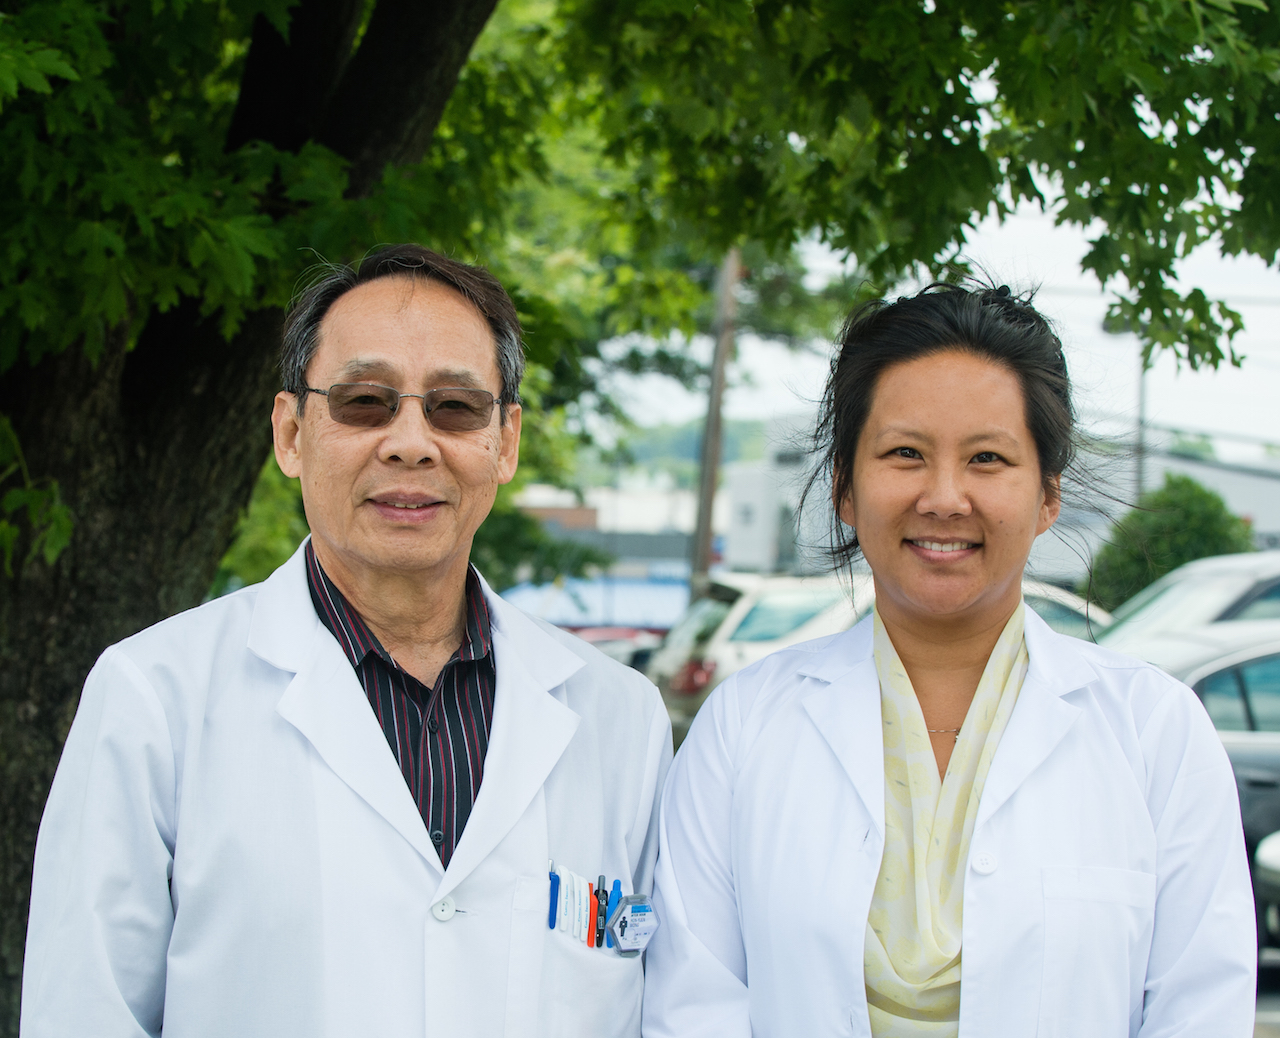 Wong Family Medicine - Silver Spring, Maryland family doctors